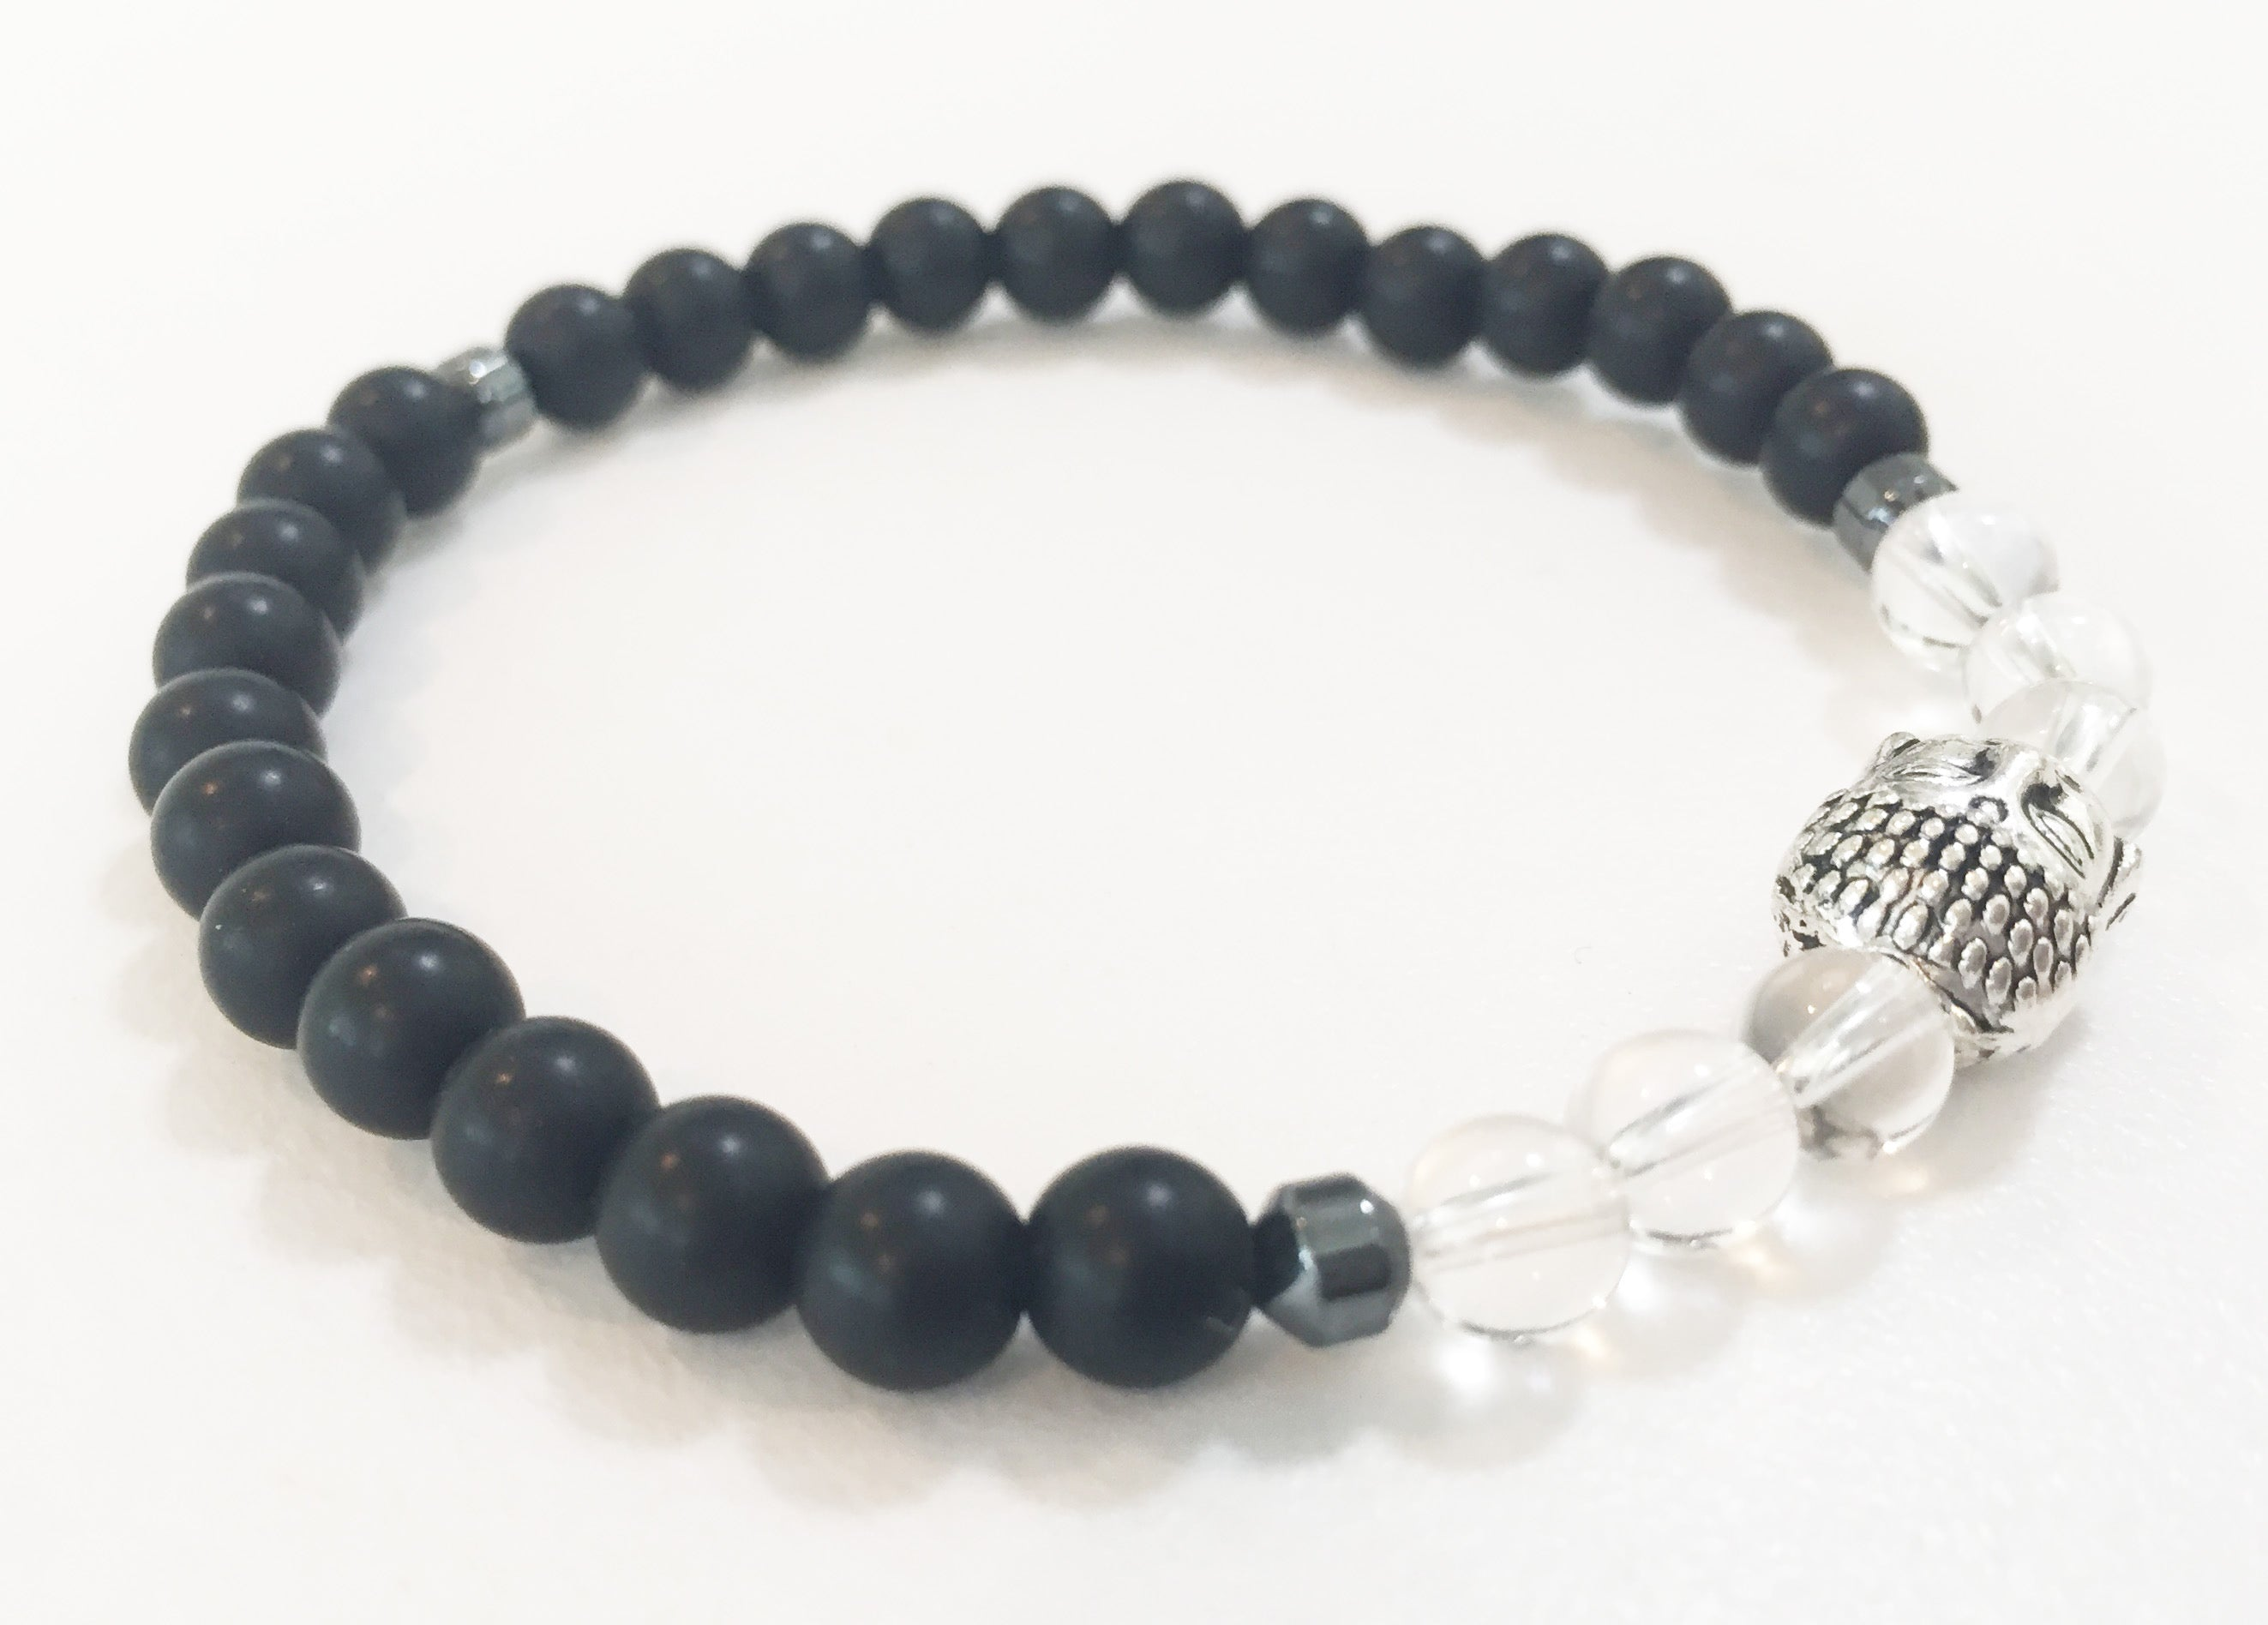 6mm Matte Obsidian & Quartz Crystal Stretch Bracelet with Buddha Head